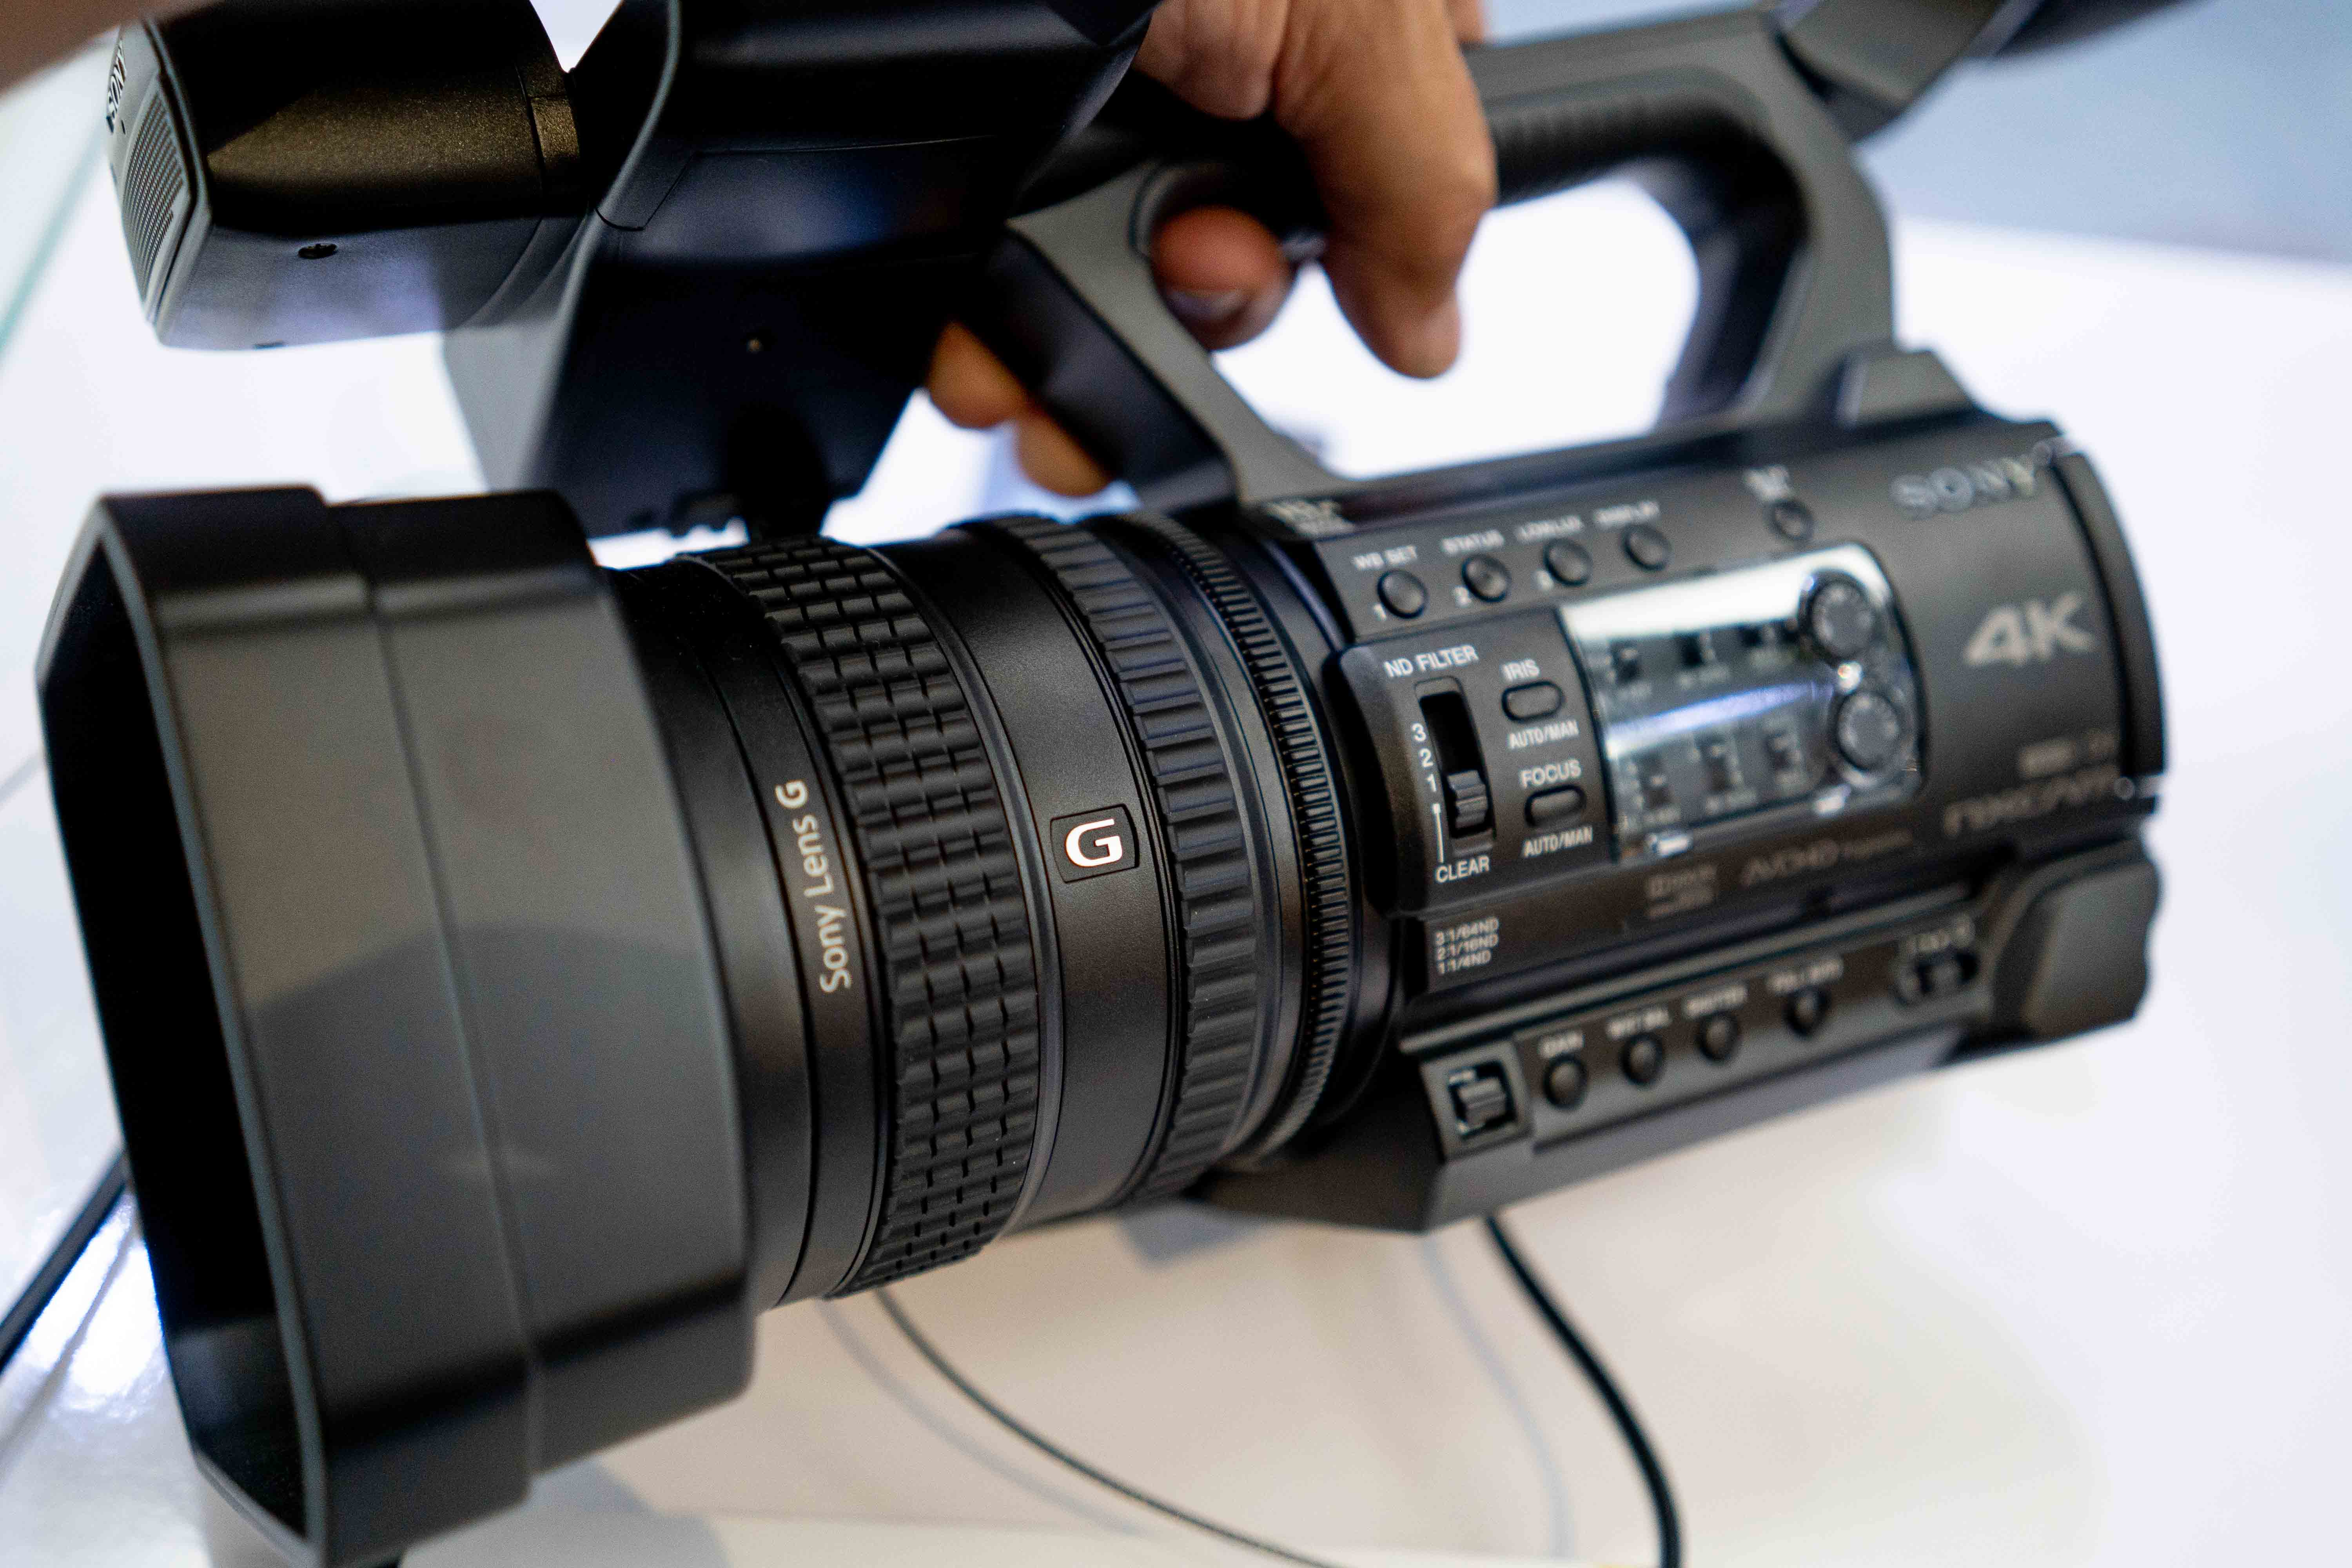 Sony Nx200 4k Camcorder Ibc 2018 Newsshooter